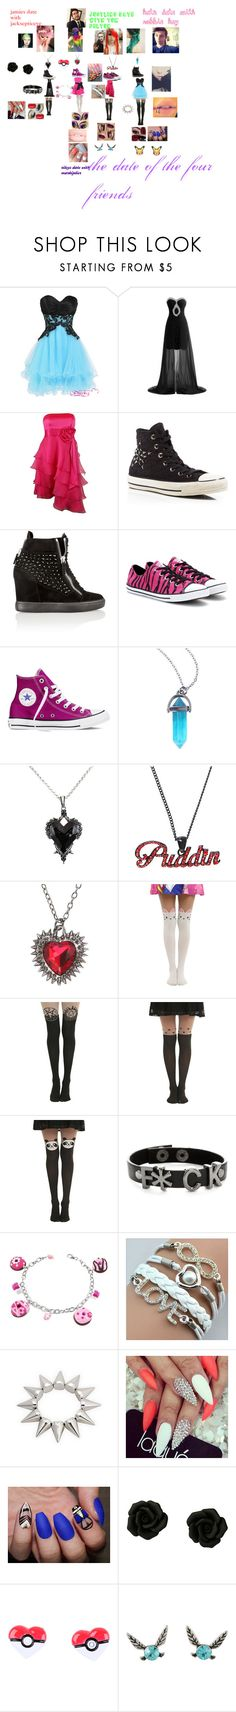 """the date of the four friends"" by dead-account-no-longer-alive ❤ liked on Polyvore featuring Haute Hippie, Converse, Giuseppe Zanotti, Hot Topic, DC Comics, Dolci Gioie, Nintendo and Radcliffe"